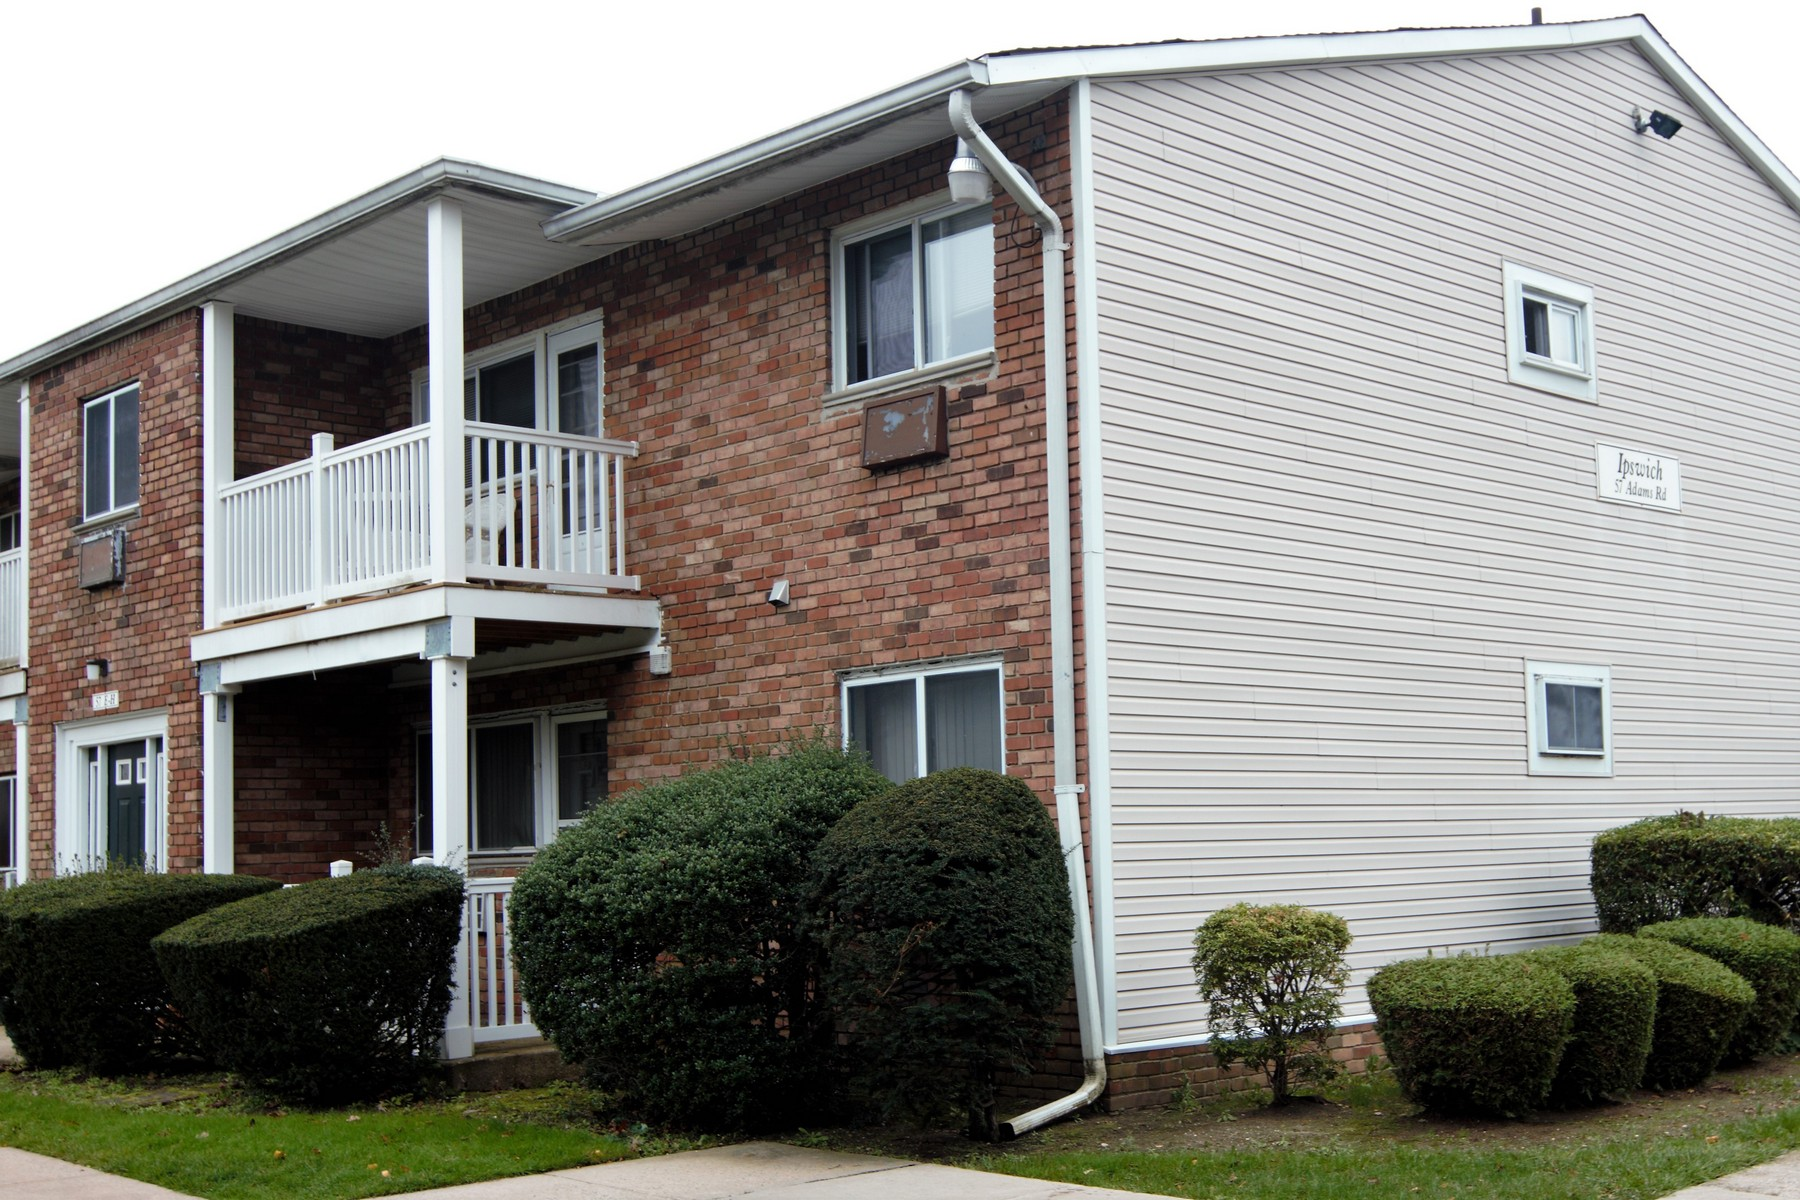 Condominium for Sale at 57 Adams Rd , Central Islip, NY 11722 57 Adams Rd 1G Central Islip, New York 11722 United States